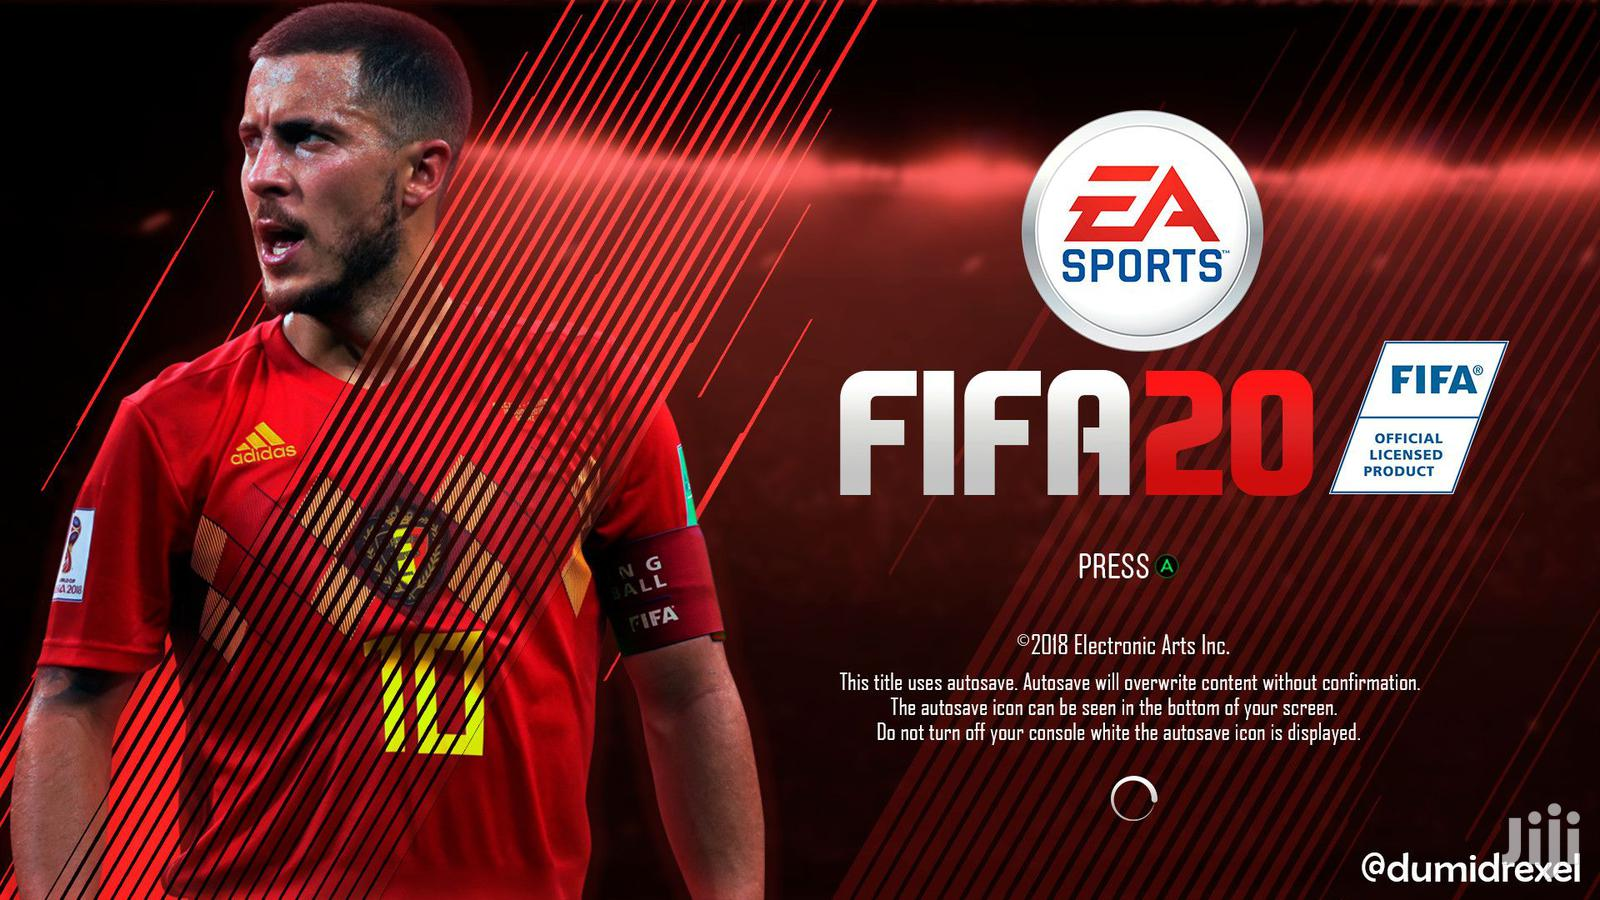 Archive: Fifa 21 for Ps3 All Jailbreak Versions